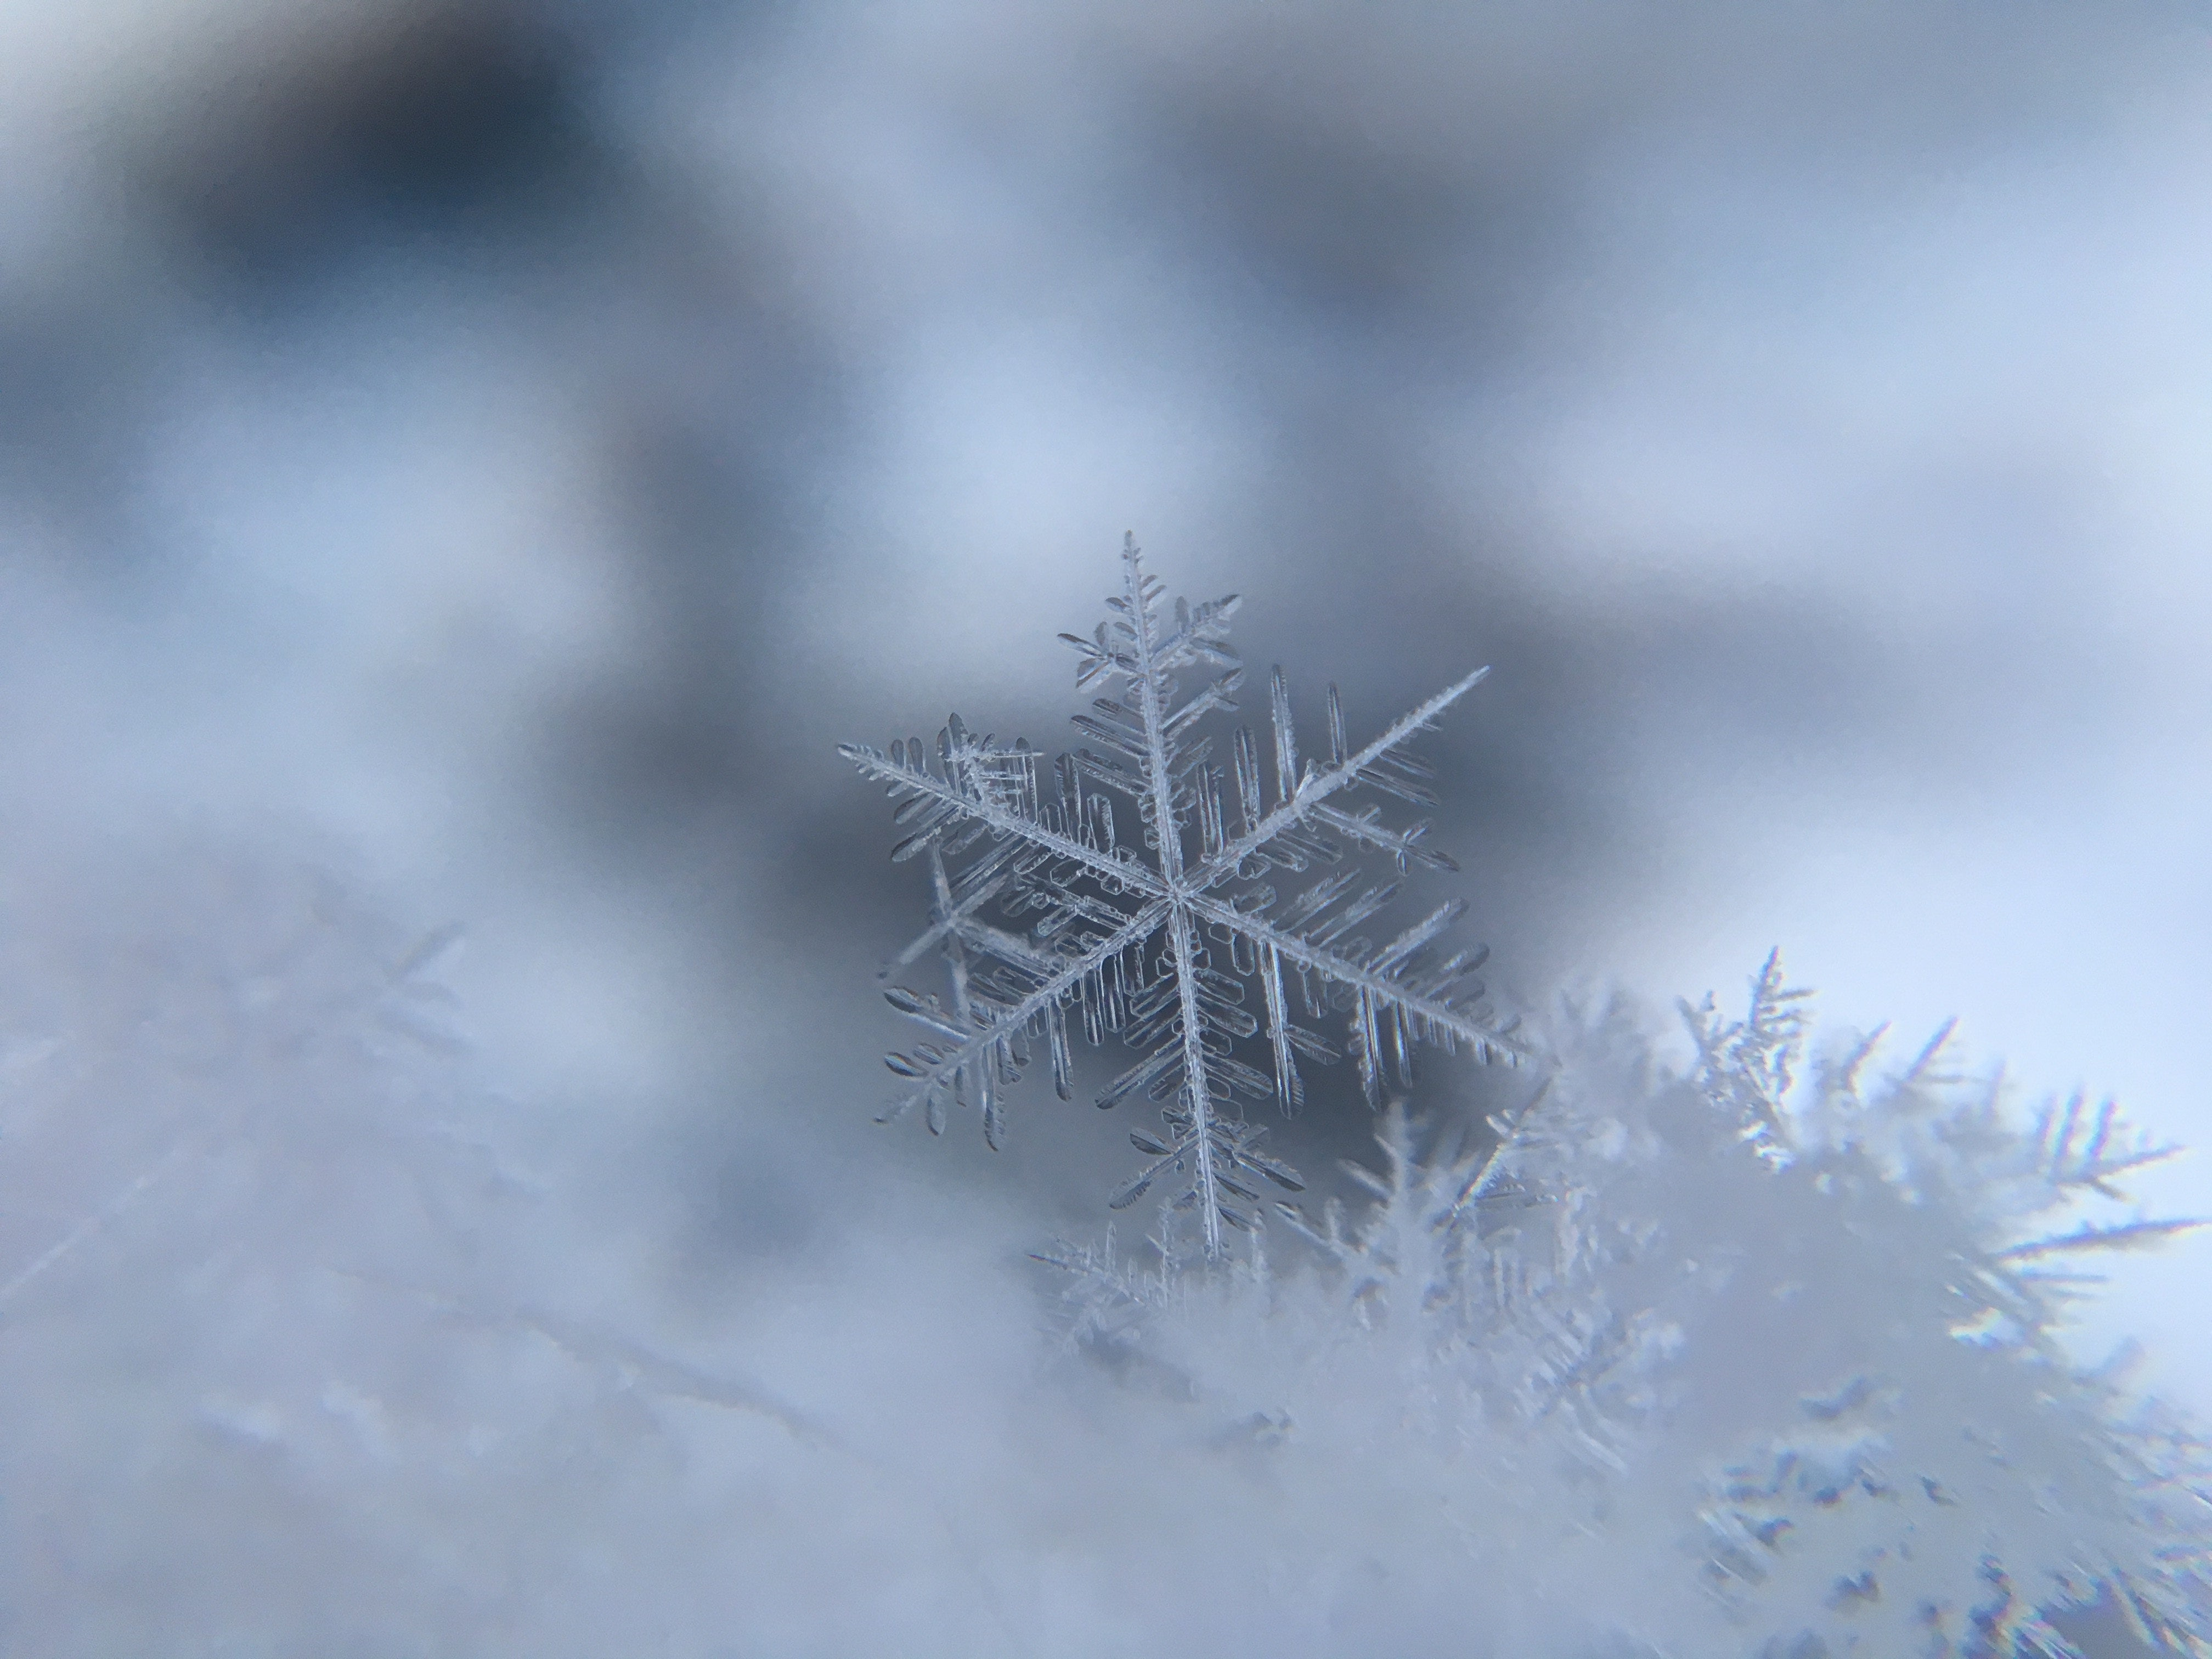 a tiny snowflake shown in great detail